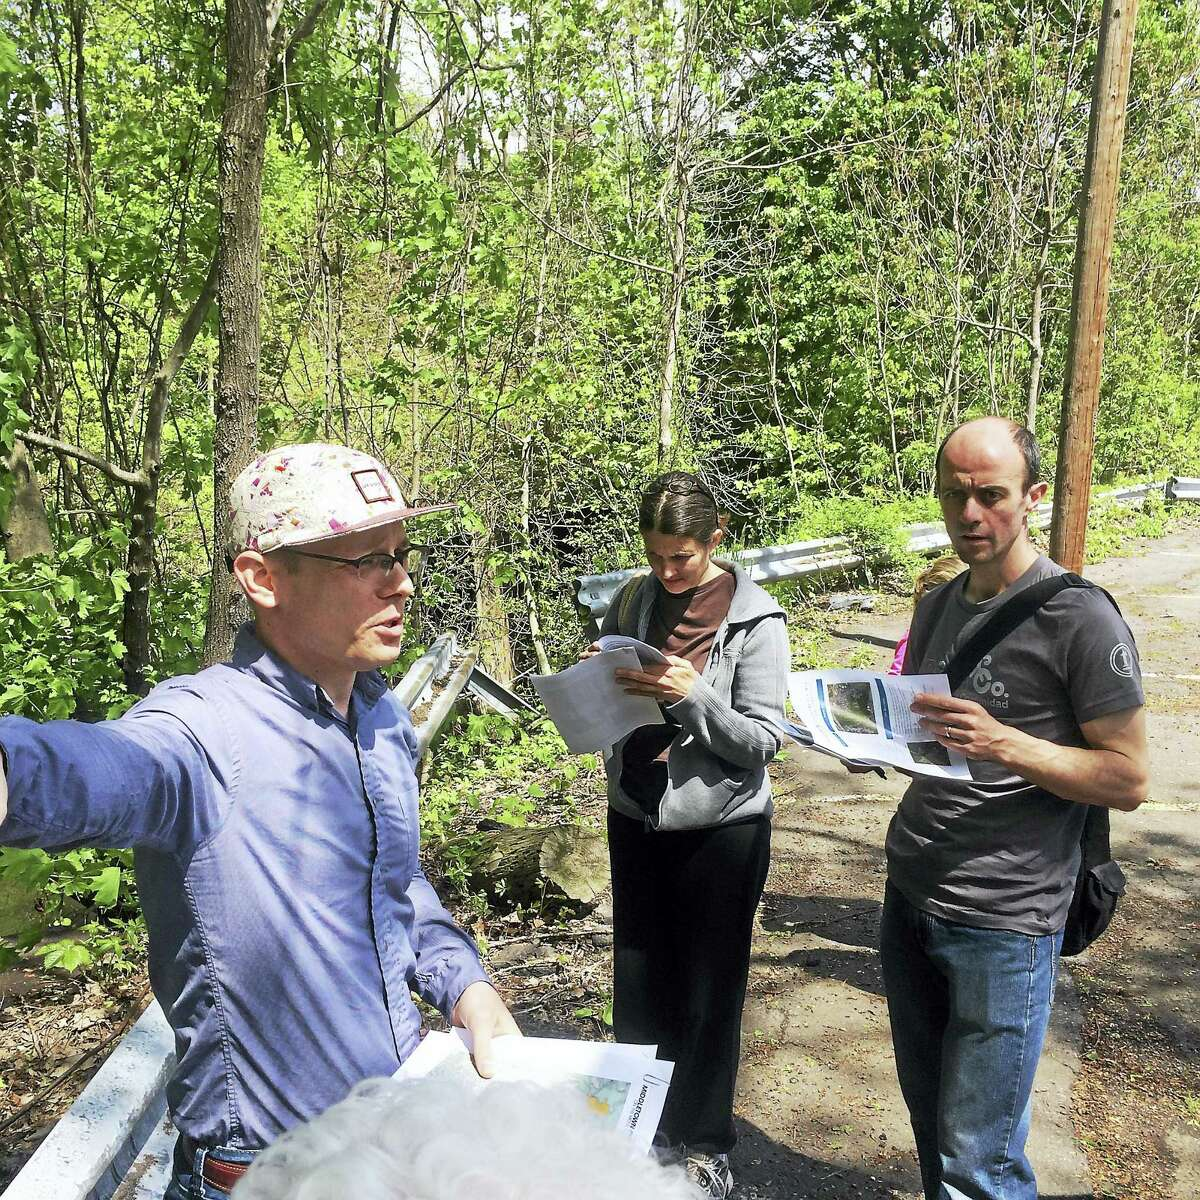 Jeff Davis of the Horsley Witten Group speaks to members of a bus tour on Saturday near Sumner Brook at rear of the parking lot of the city's former Social Services office on Main Street Extension.